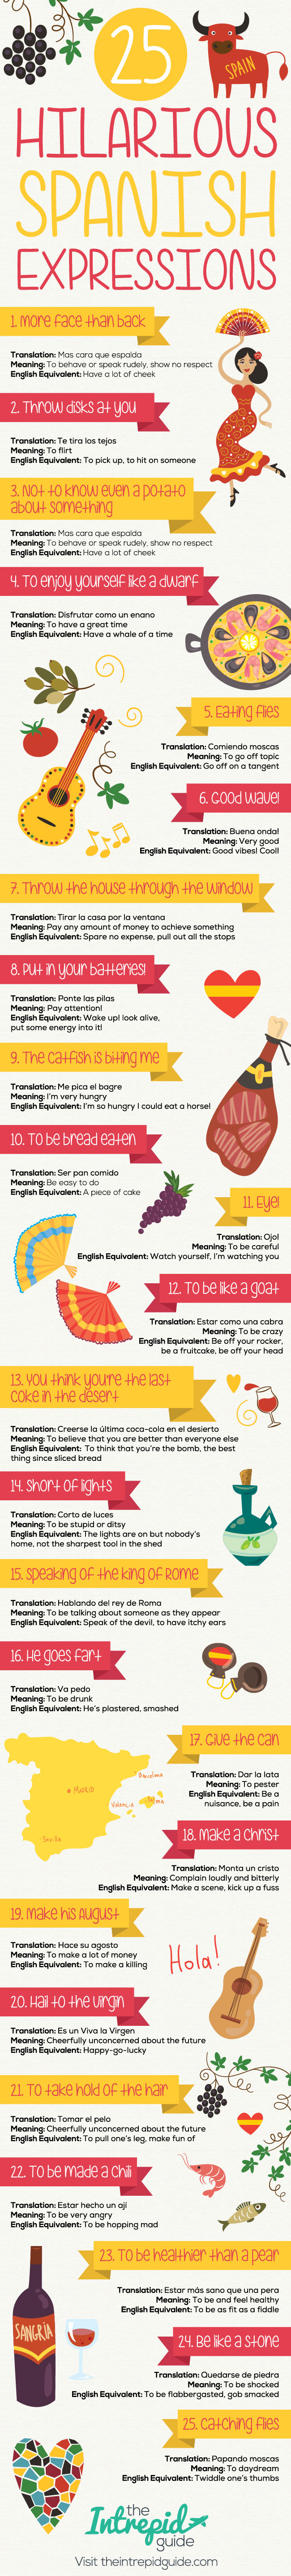 Hilarious Spanish Expressions